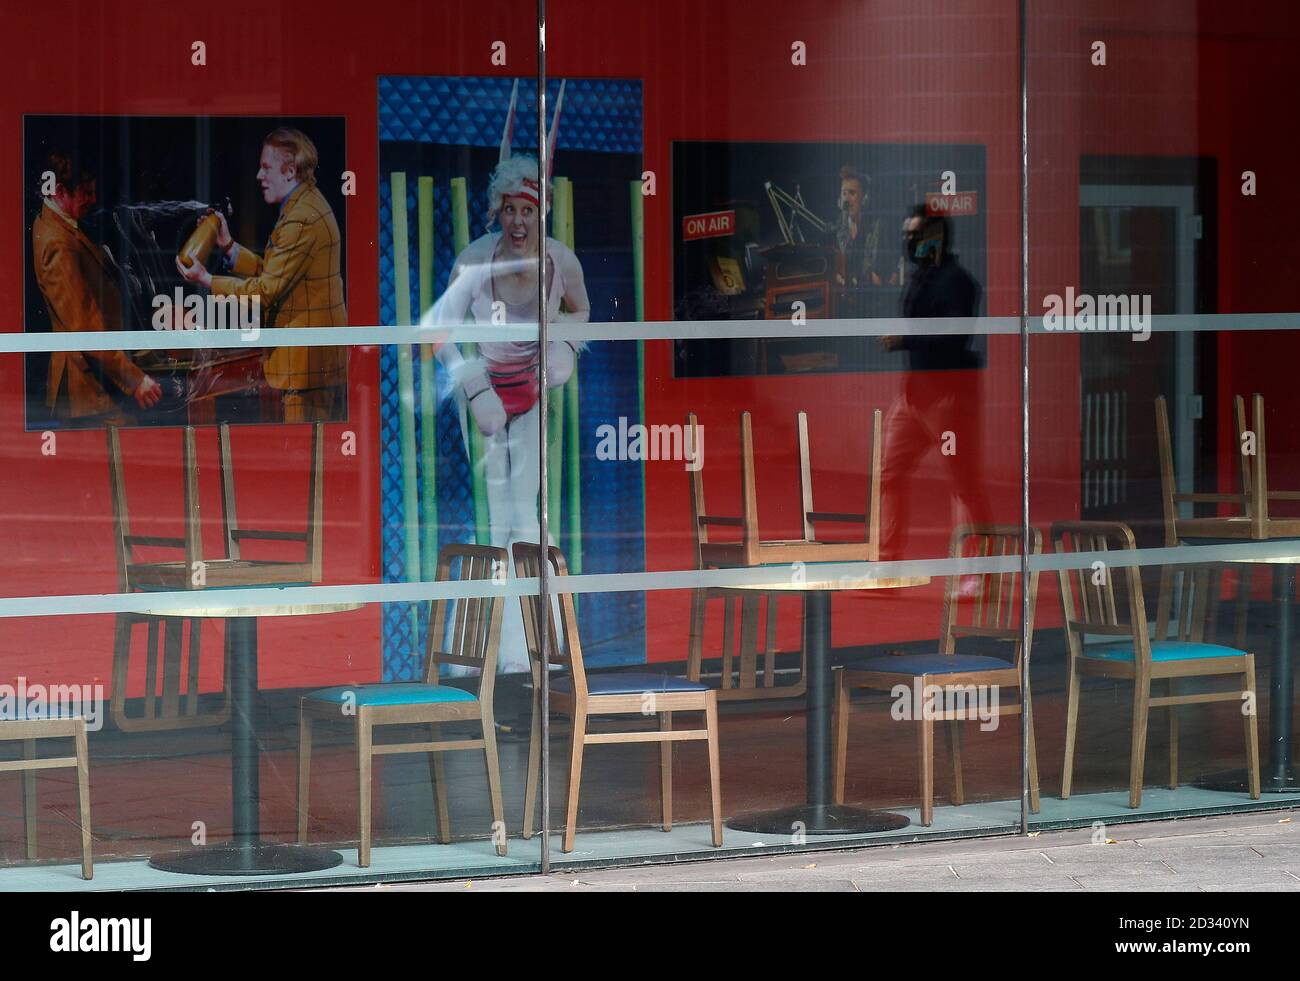 Leicester, Leicestershire, UK. 7th October 2020. A man is reflected in the window of the closed Curve Theatre 100 days since the UKÕs first local coronavirus pandemic lockdown was announced in the city. Credit Darren Staples/Alamy Live News. Stock Photo